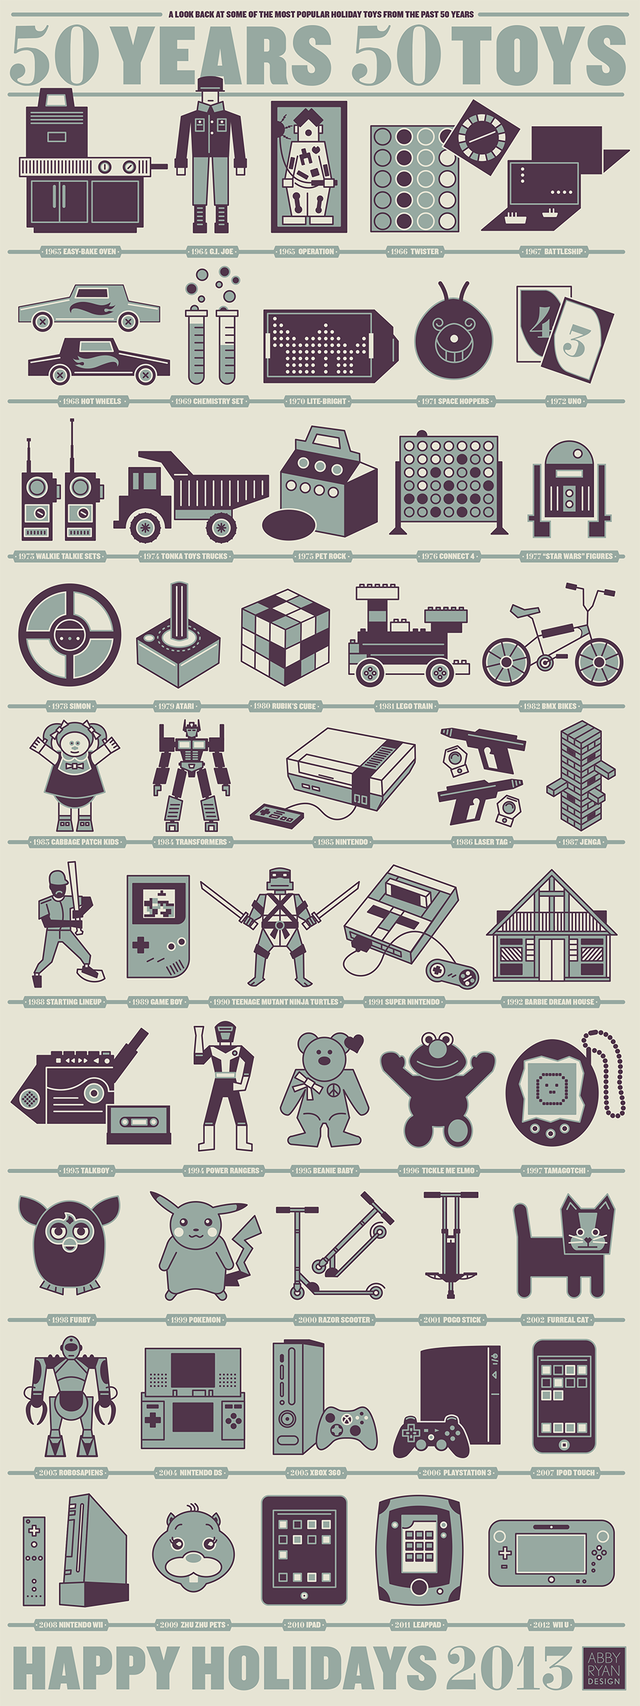 50 Years 50 Toys, An Infographic of Popular Holiday Toys from 1963 to Today